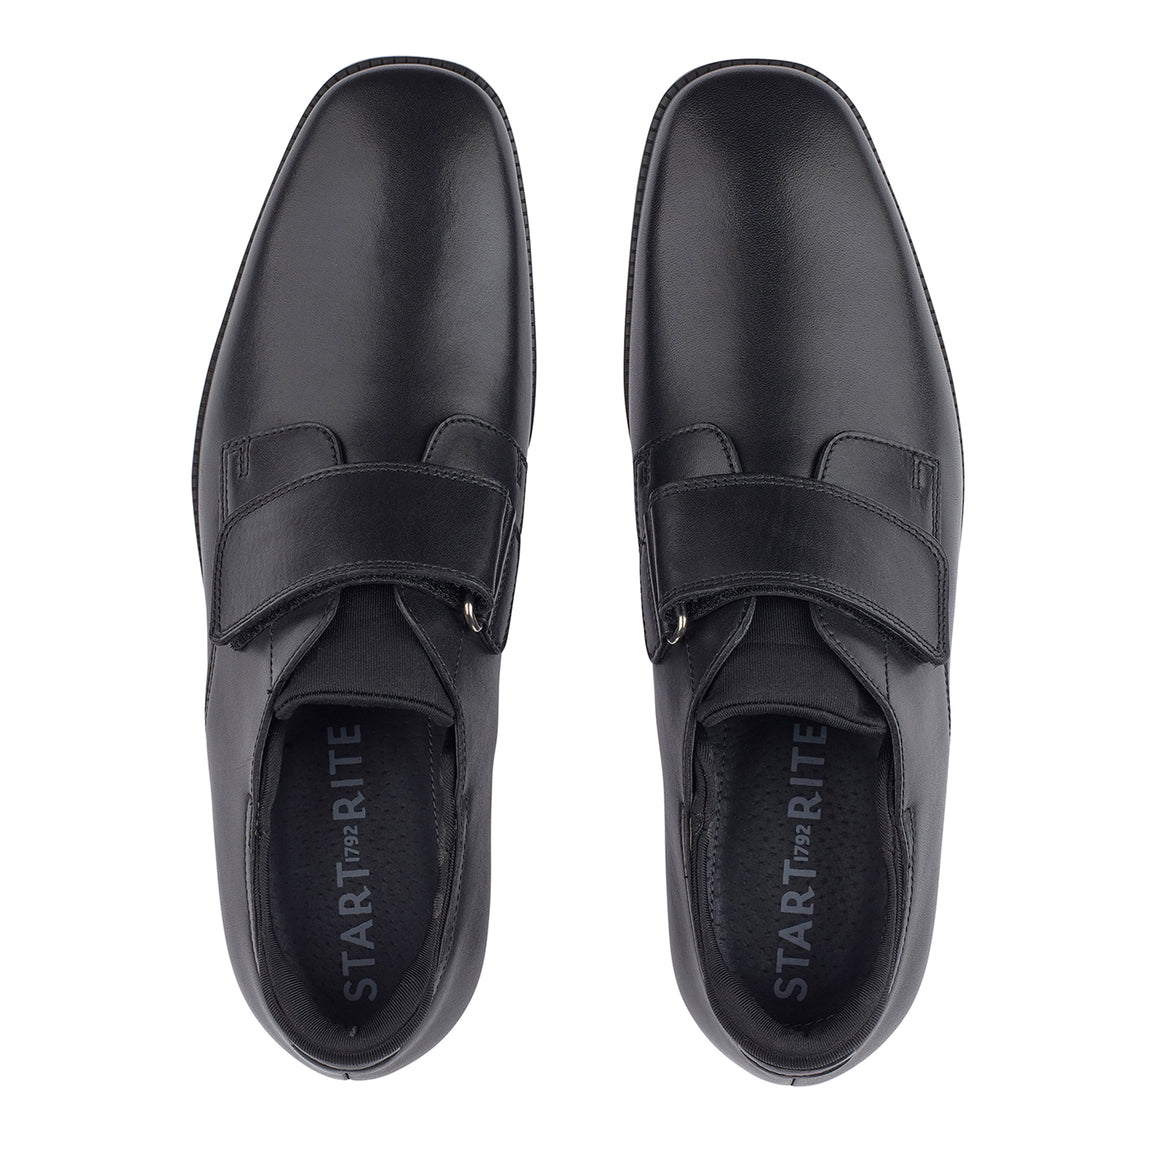 Logic School Shoes for Boys in Black